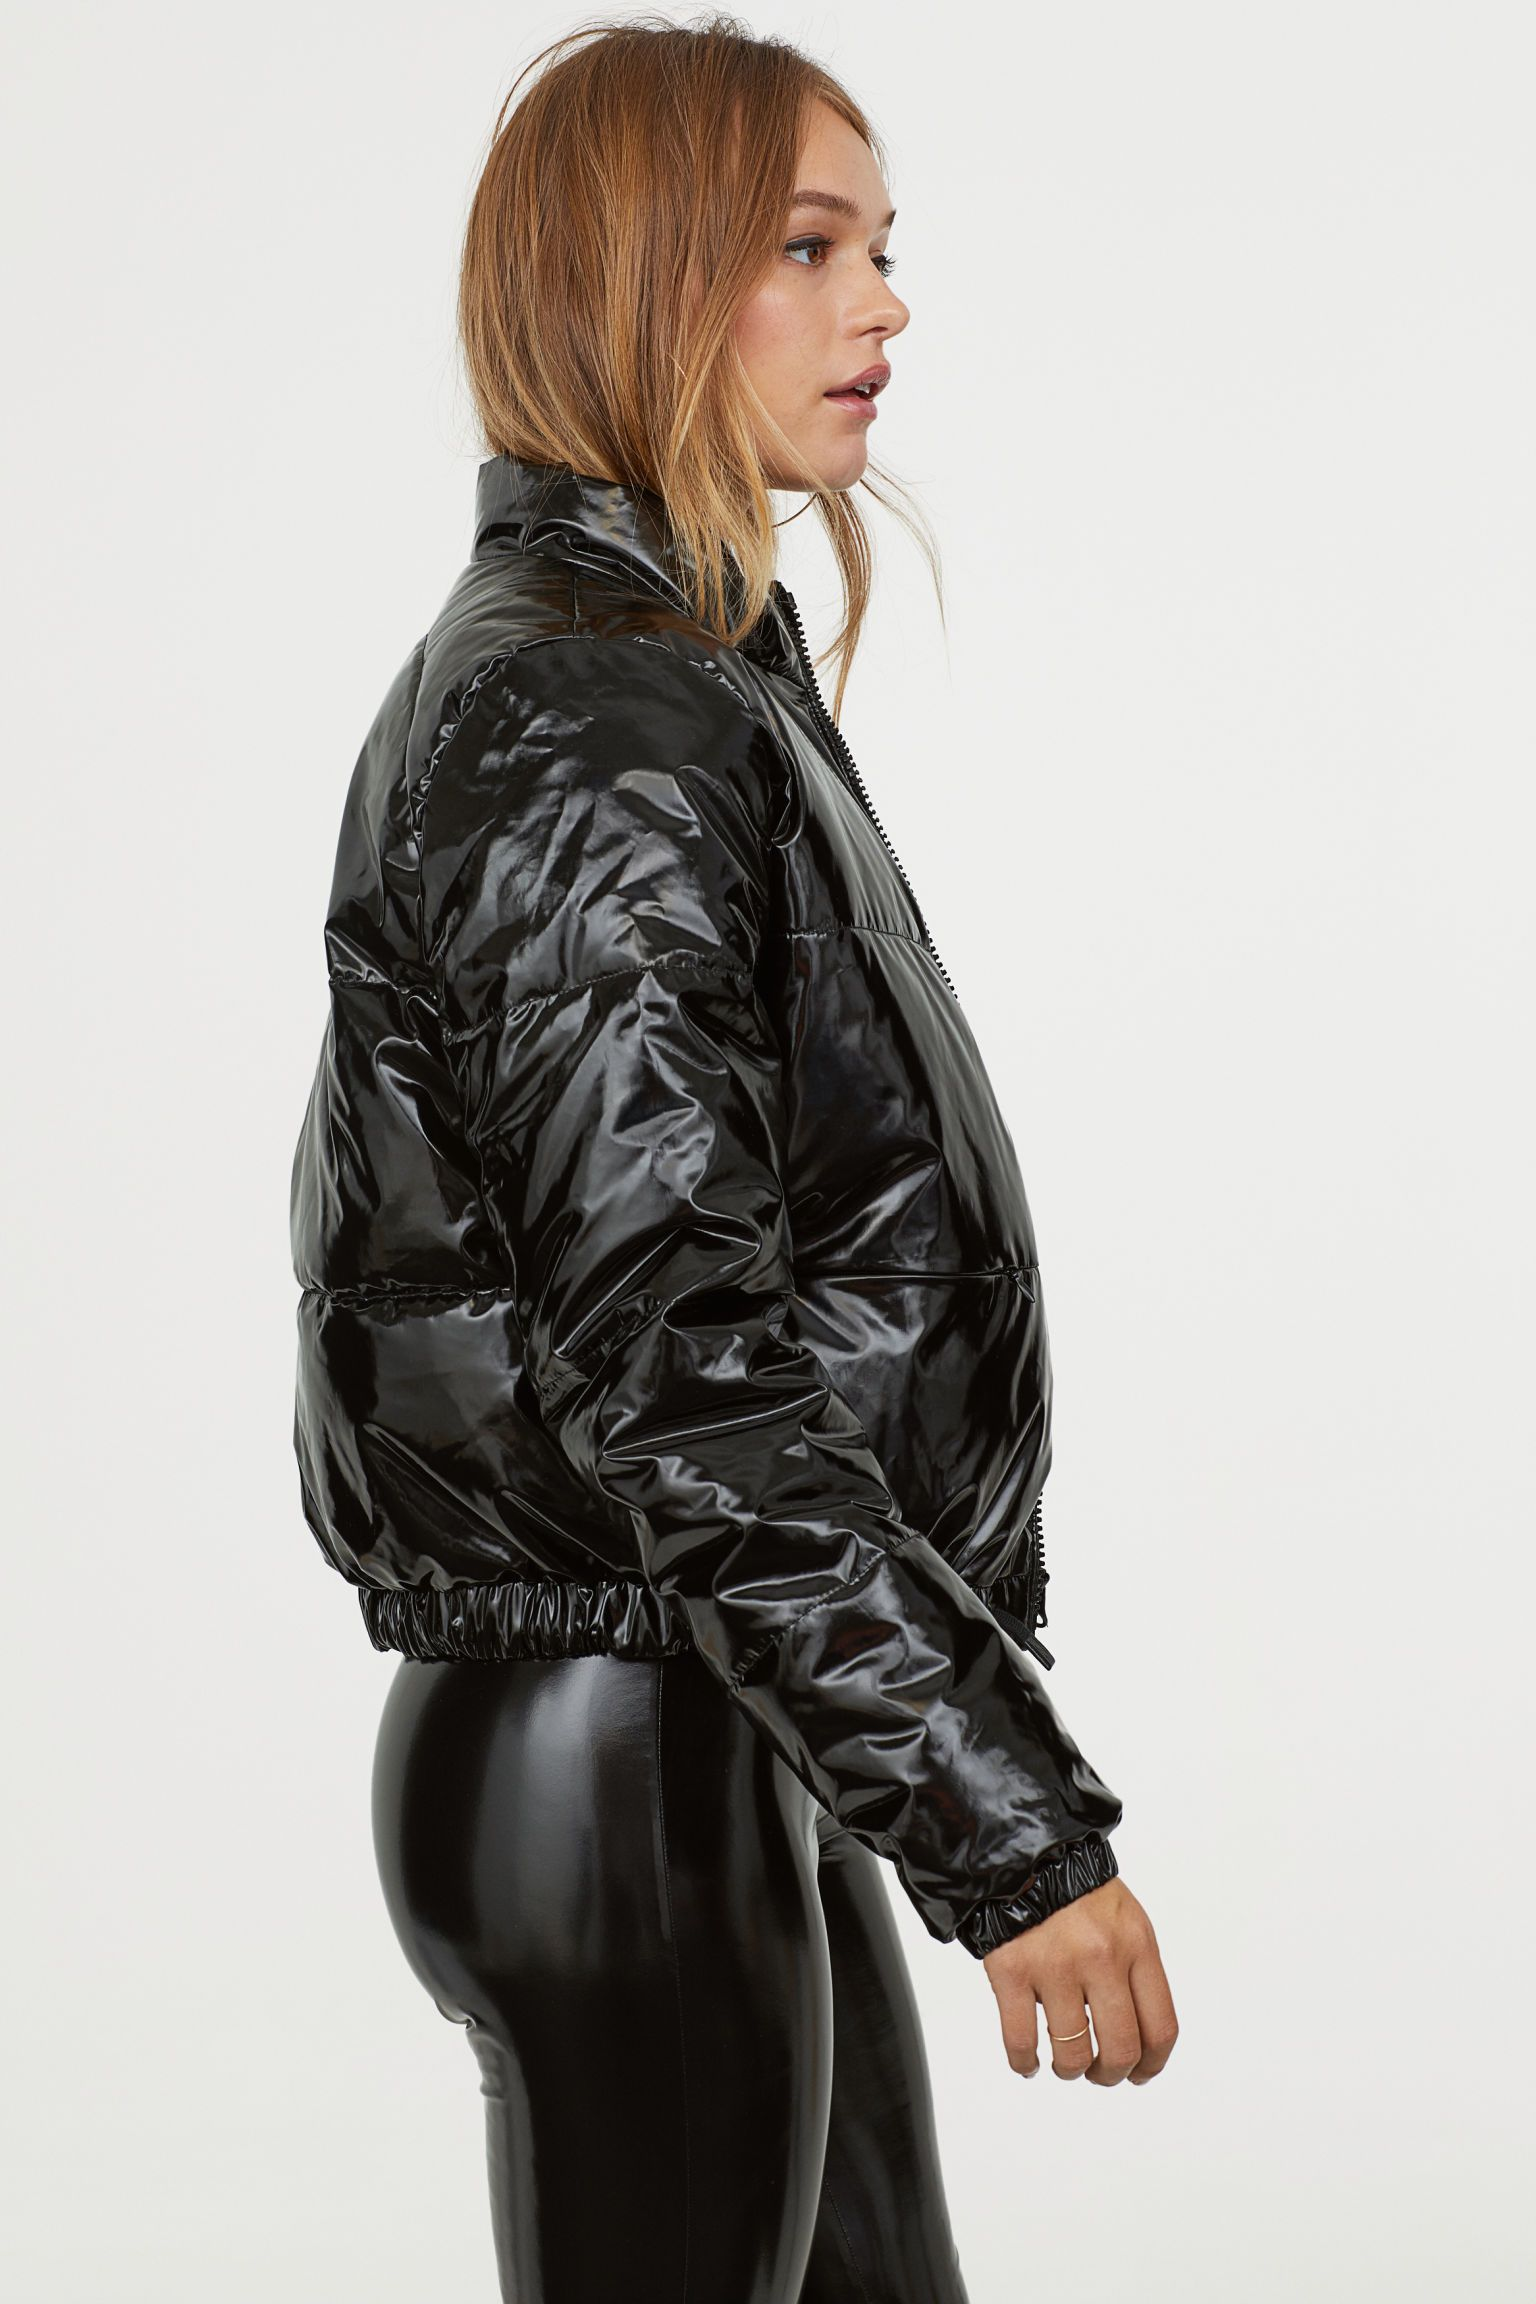 Padded Jacket Padded jacket, Leather leggings outfit